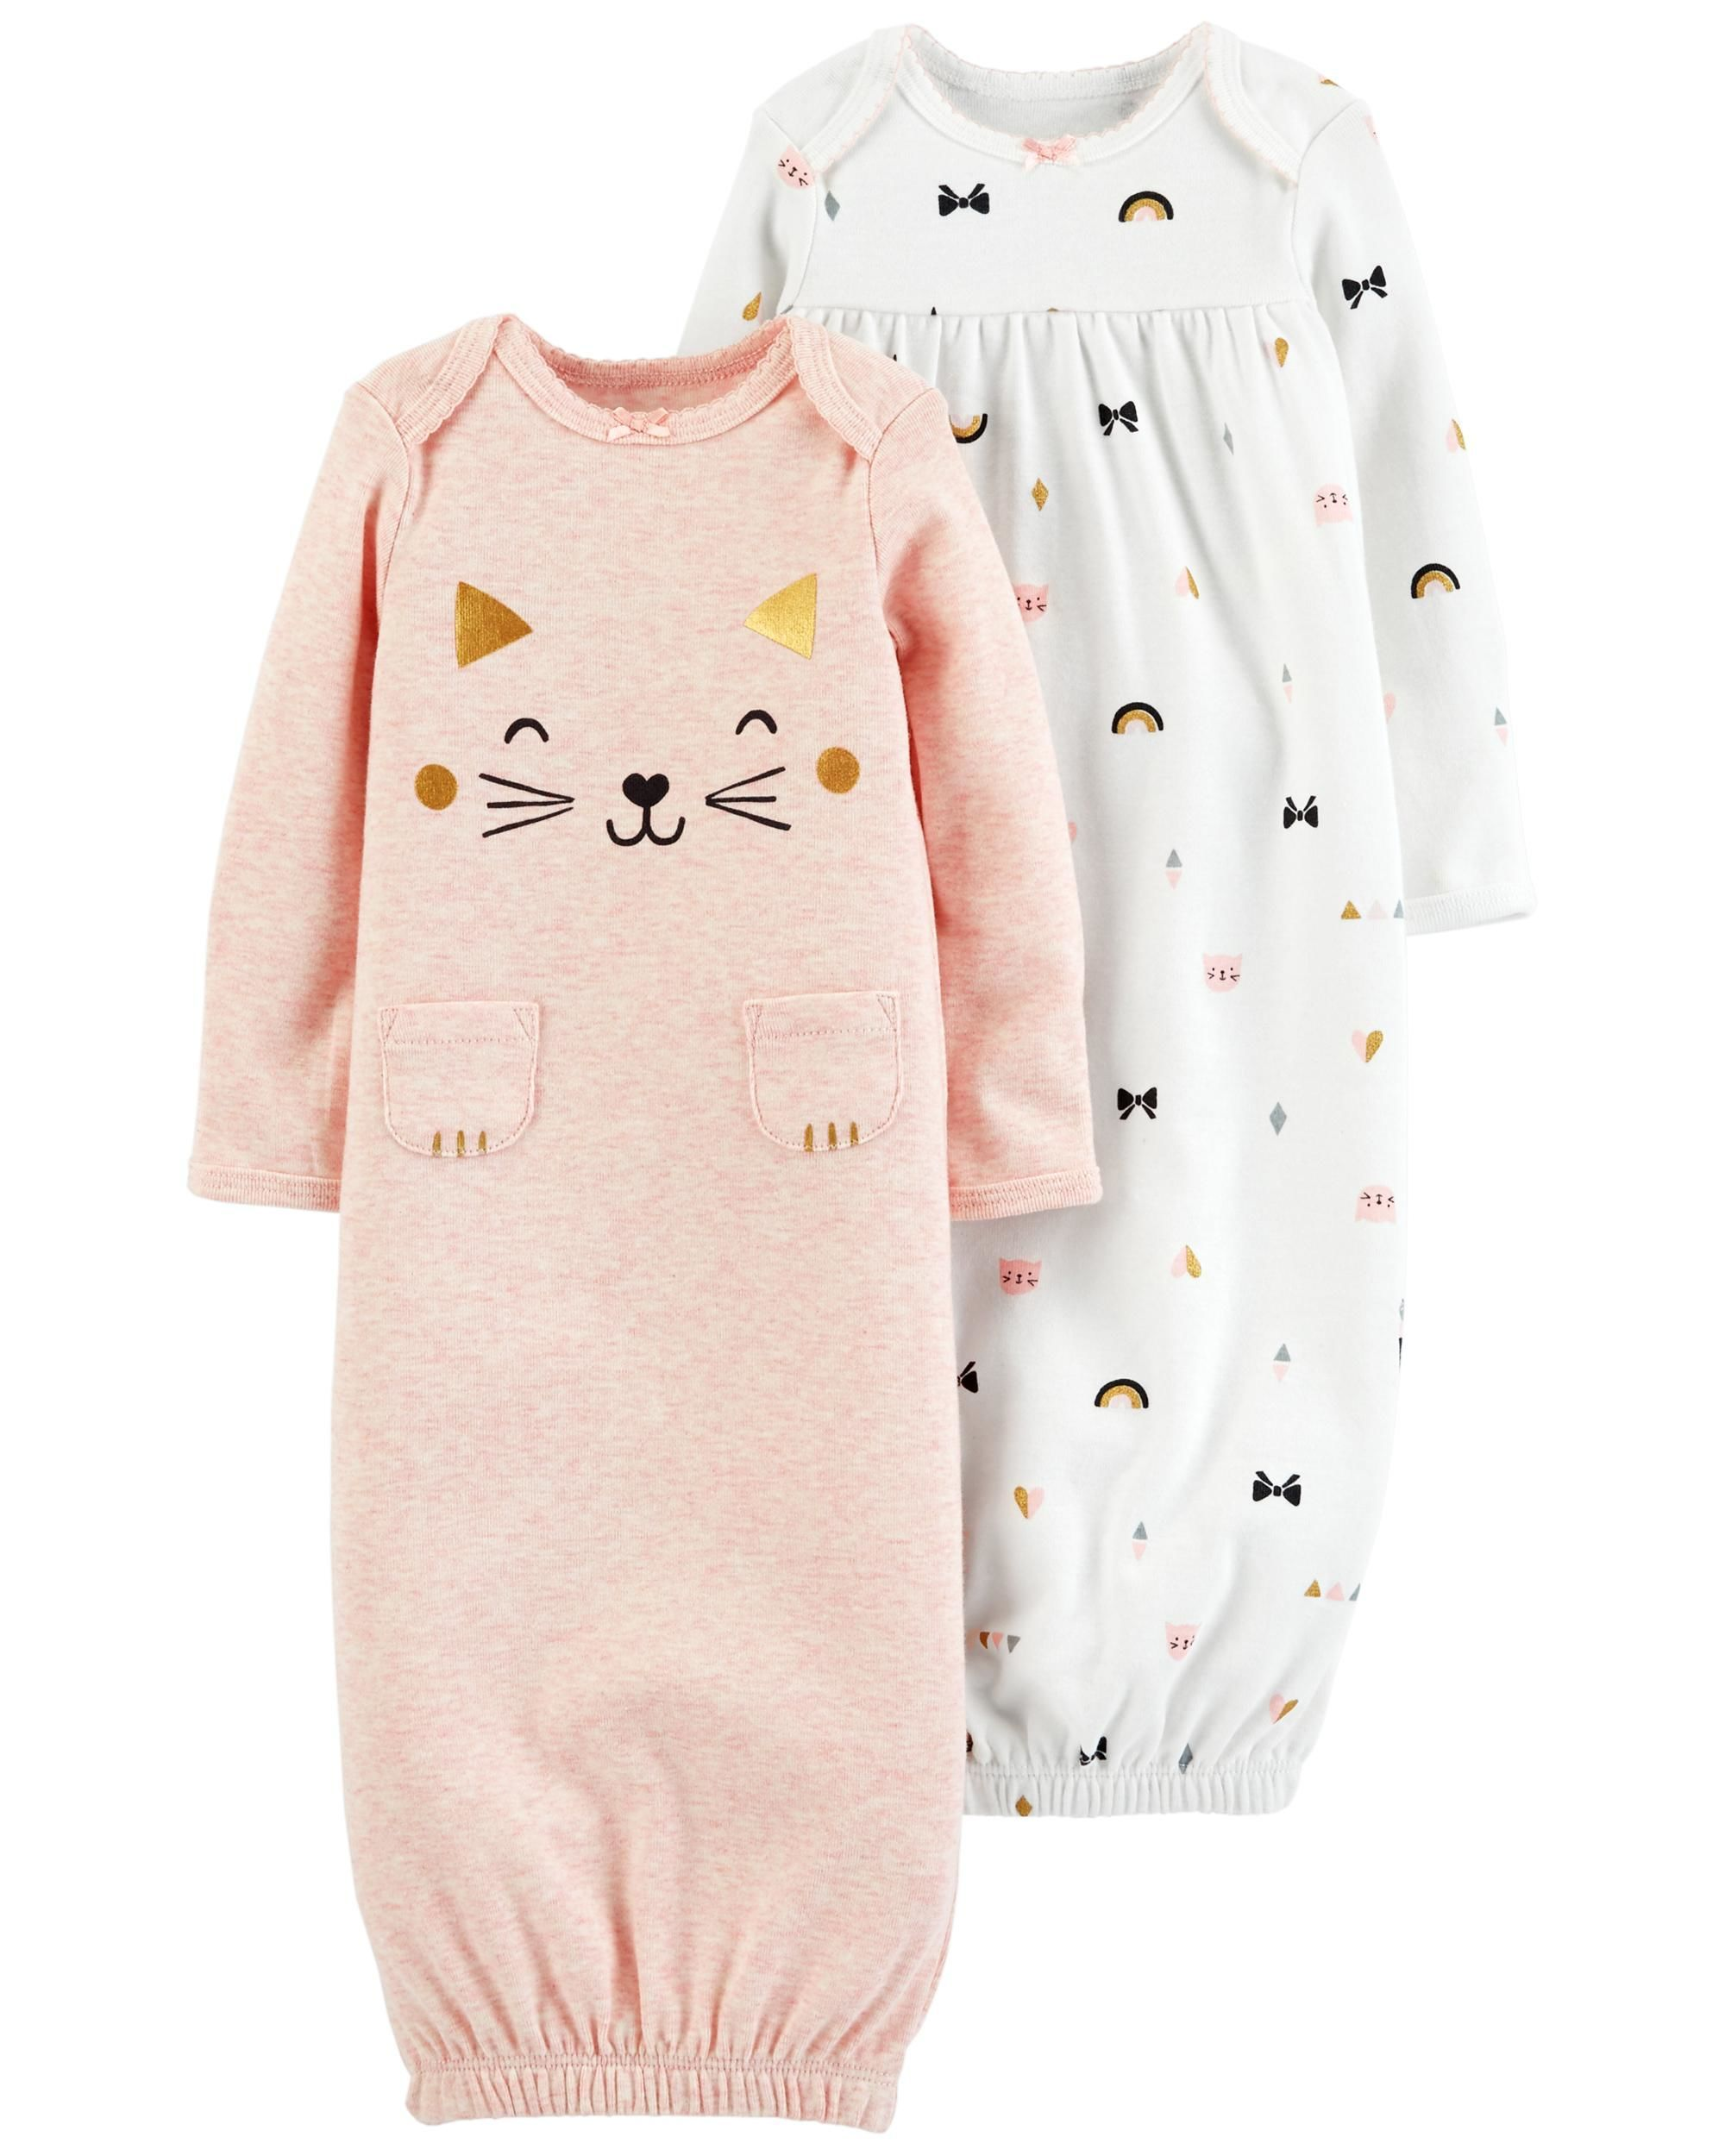 32c70c7d0 2-Pack Babysoft Sleeper Gowns | Future baby | Carters baby girl ...